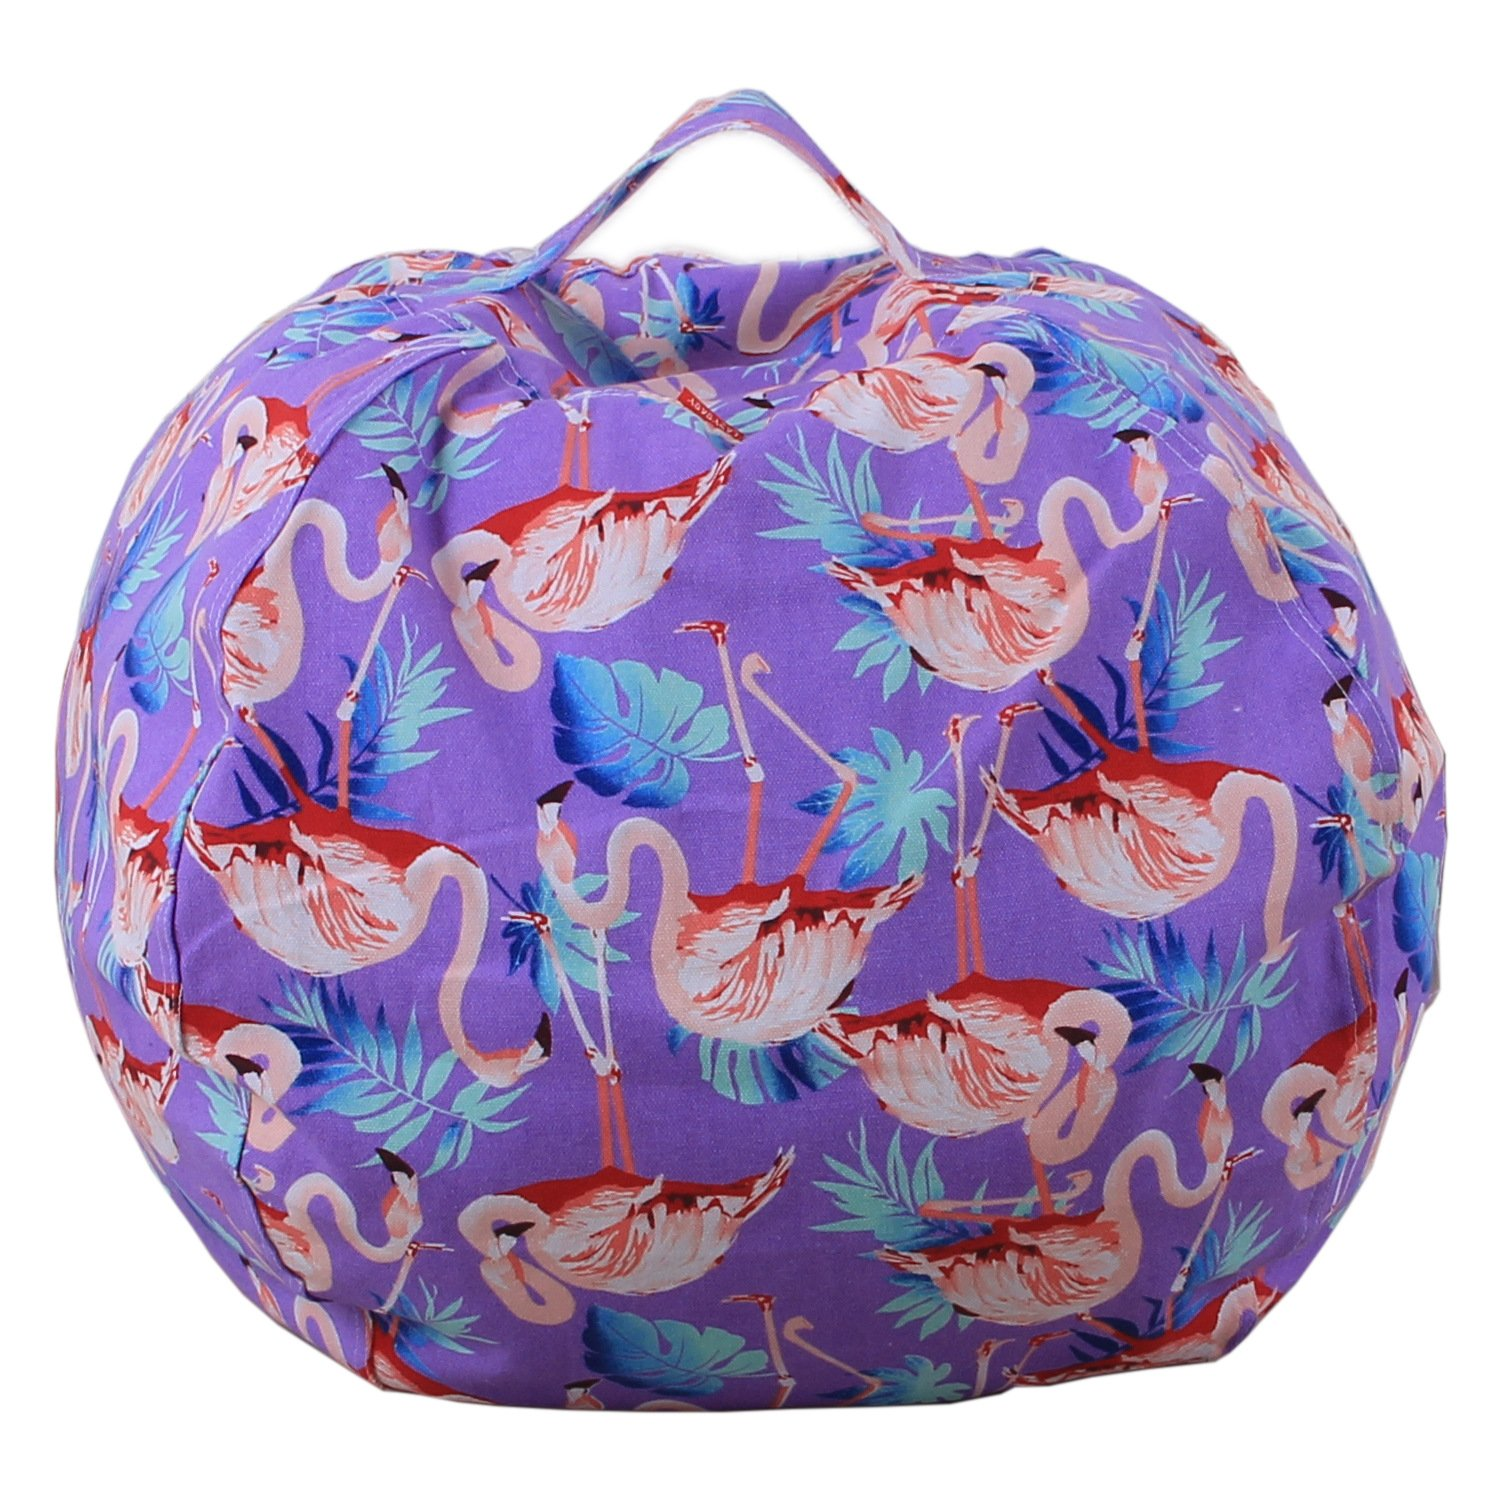 Dodd Kid's Stuff'n Sit - Stuffed Animals Storage Bean Bag Pouf -Available in 3 Sizes- Clean up the Room and Put Those Critters to Work for You,Flamingo (38 inch)